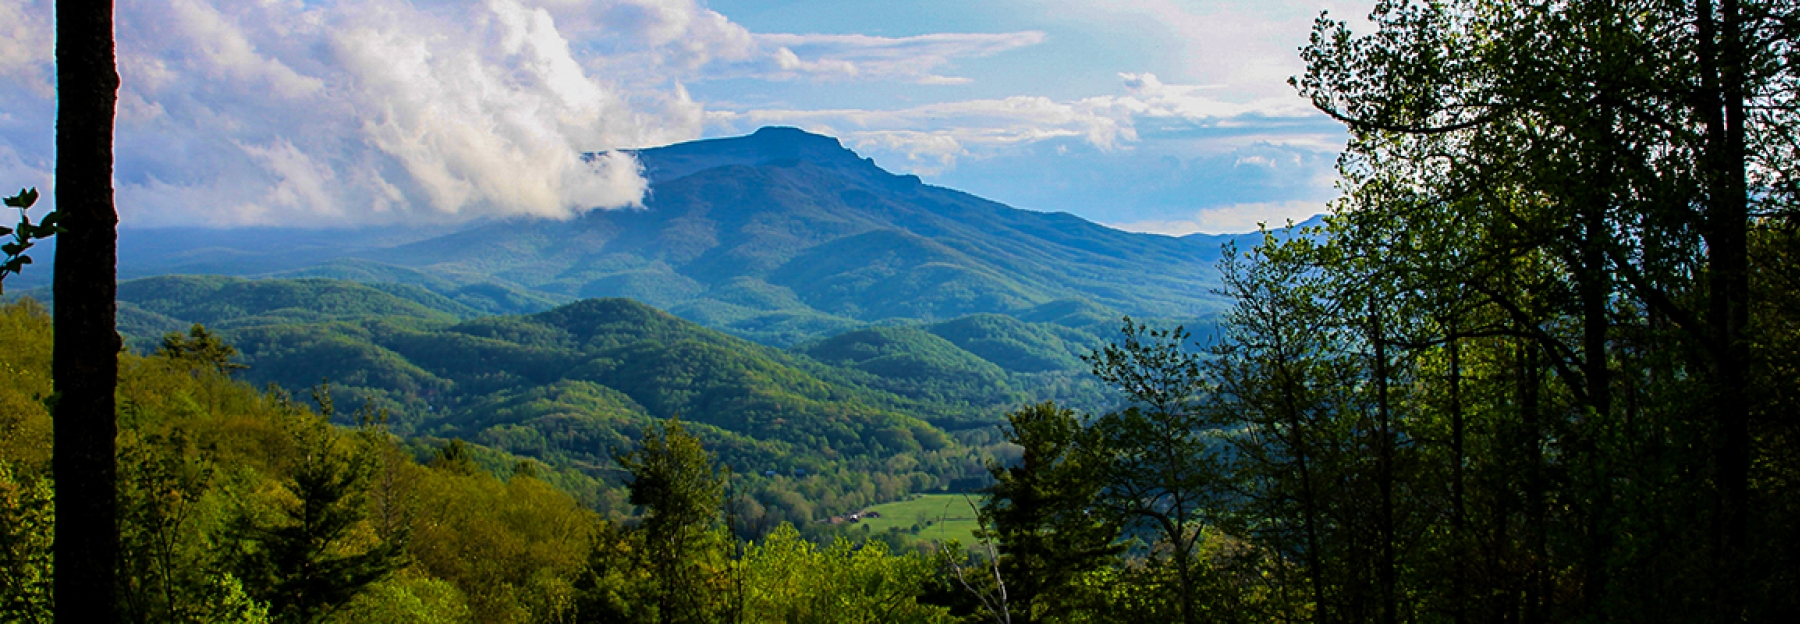 View of grandfather mountain near Boone NC